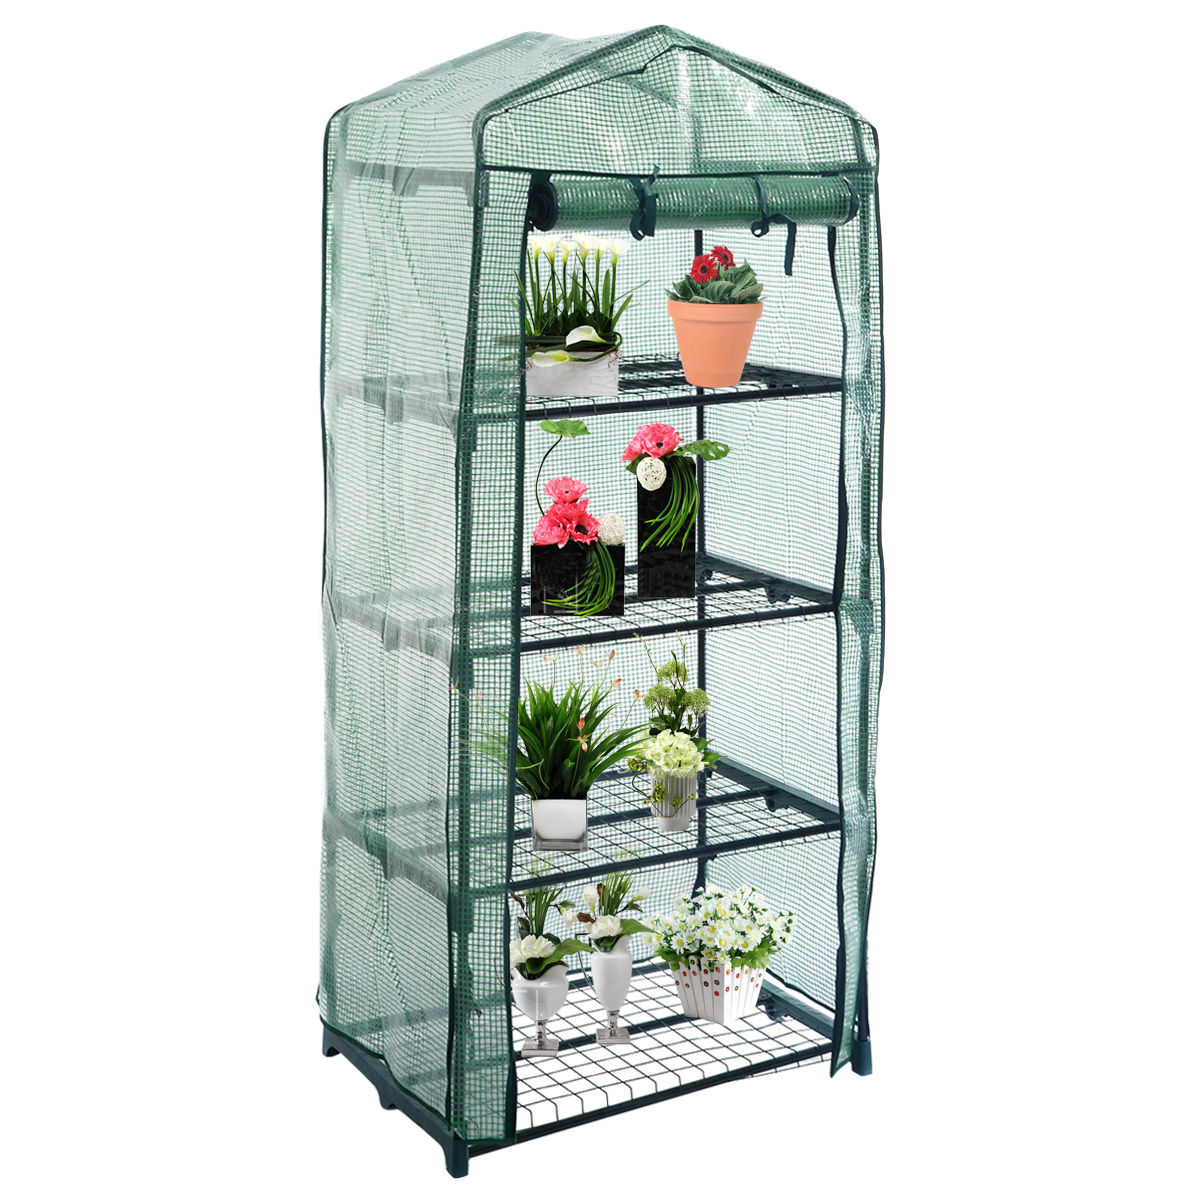 practical 4 tier outdoor garden greenhouse grow cold frame wshelving reinforced cvers